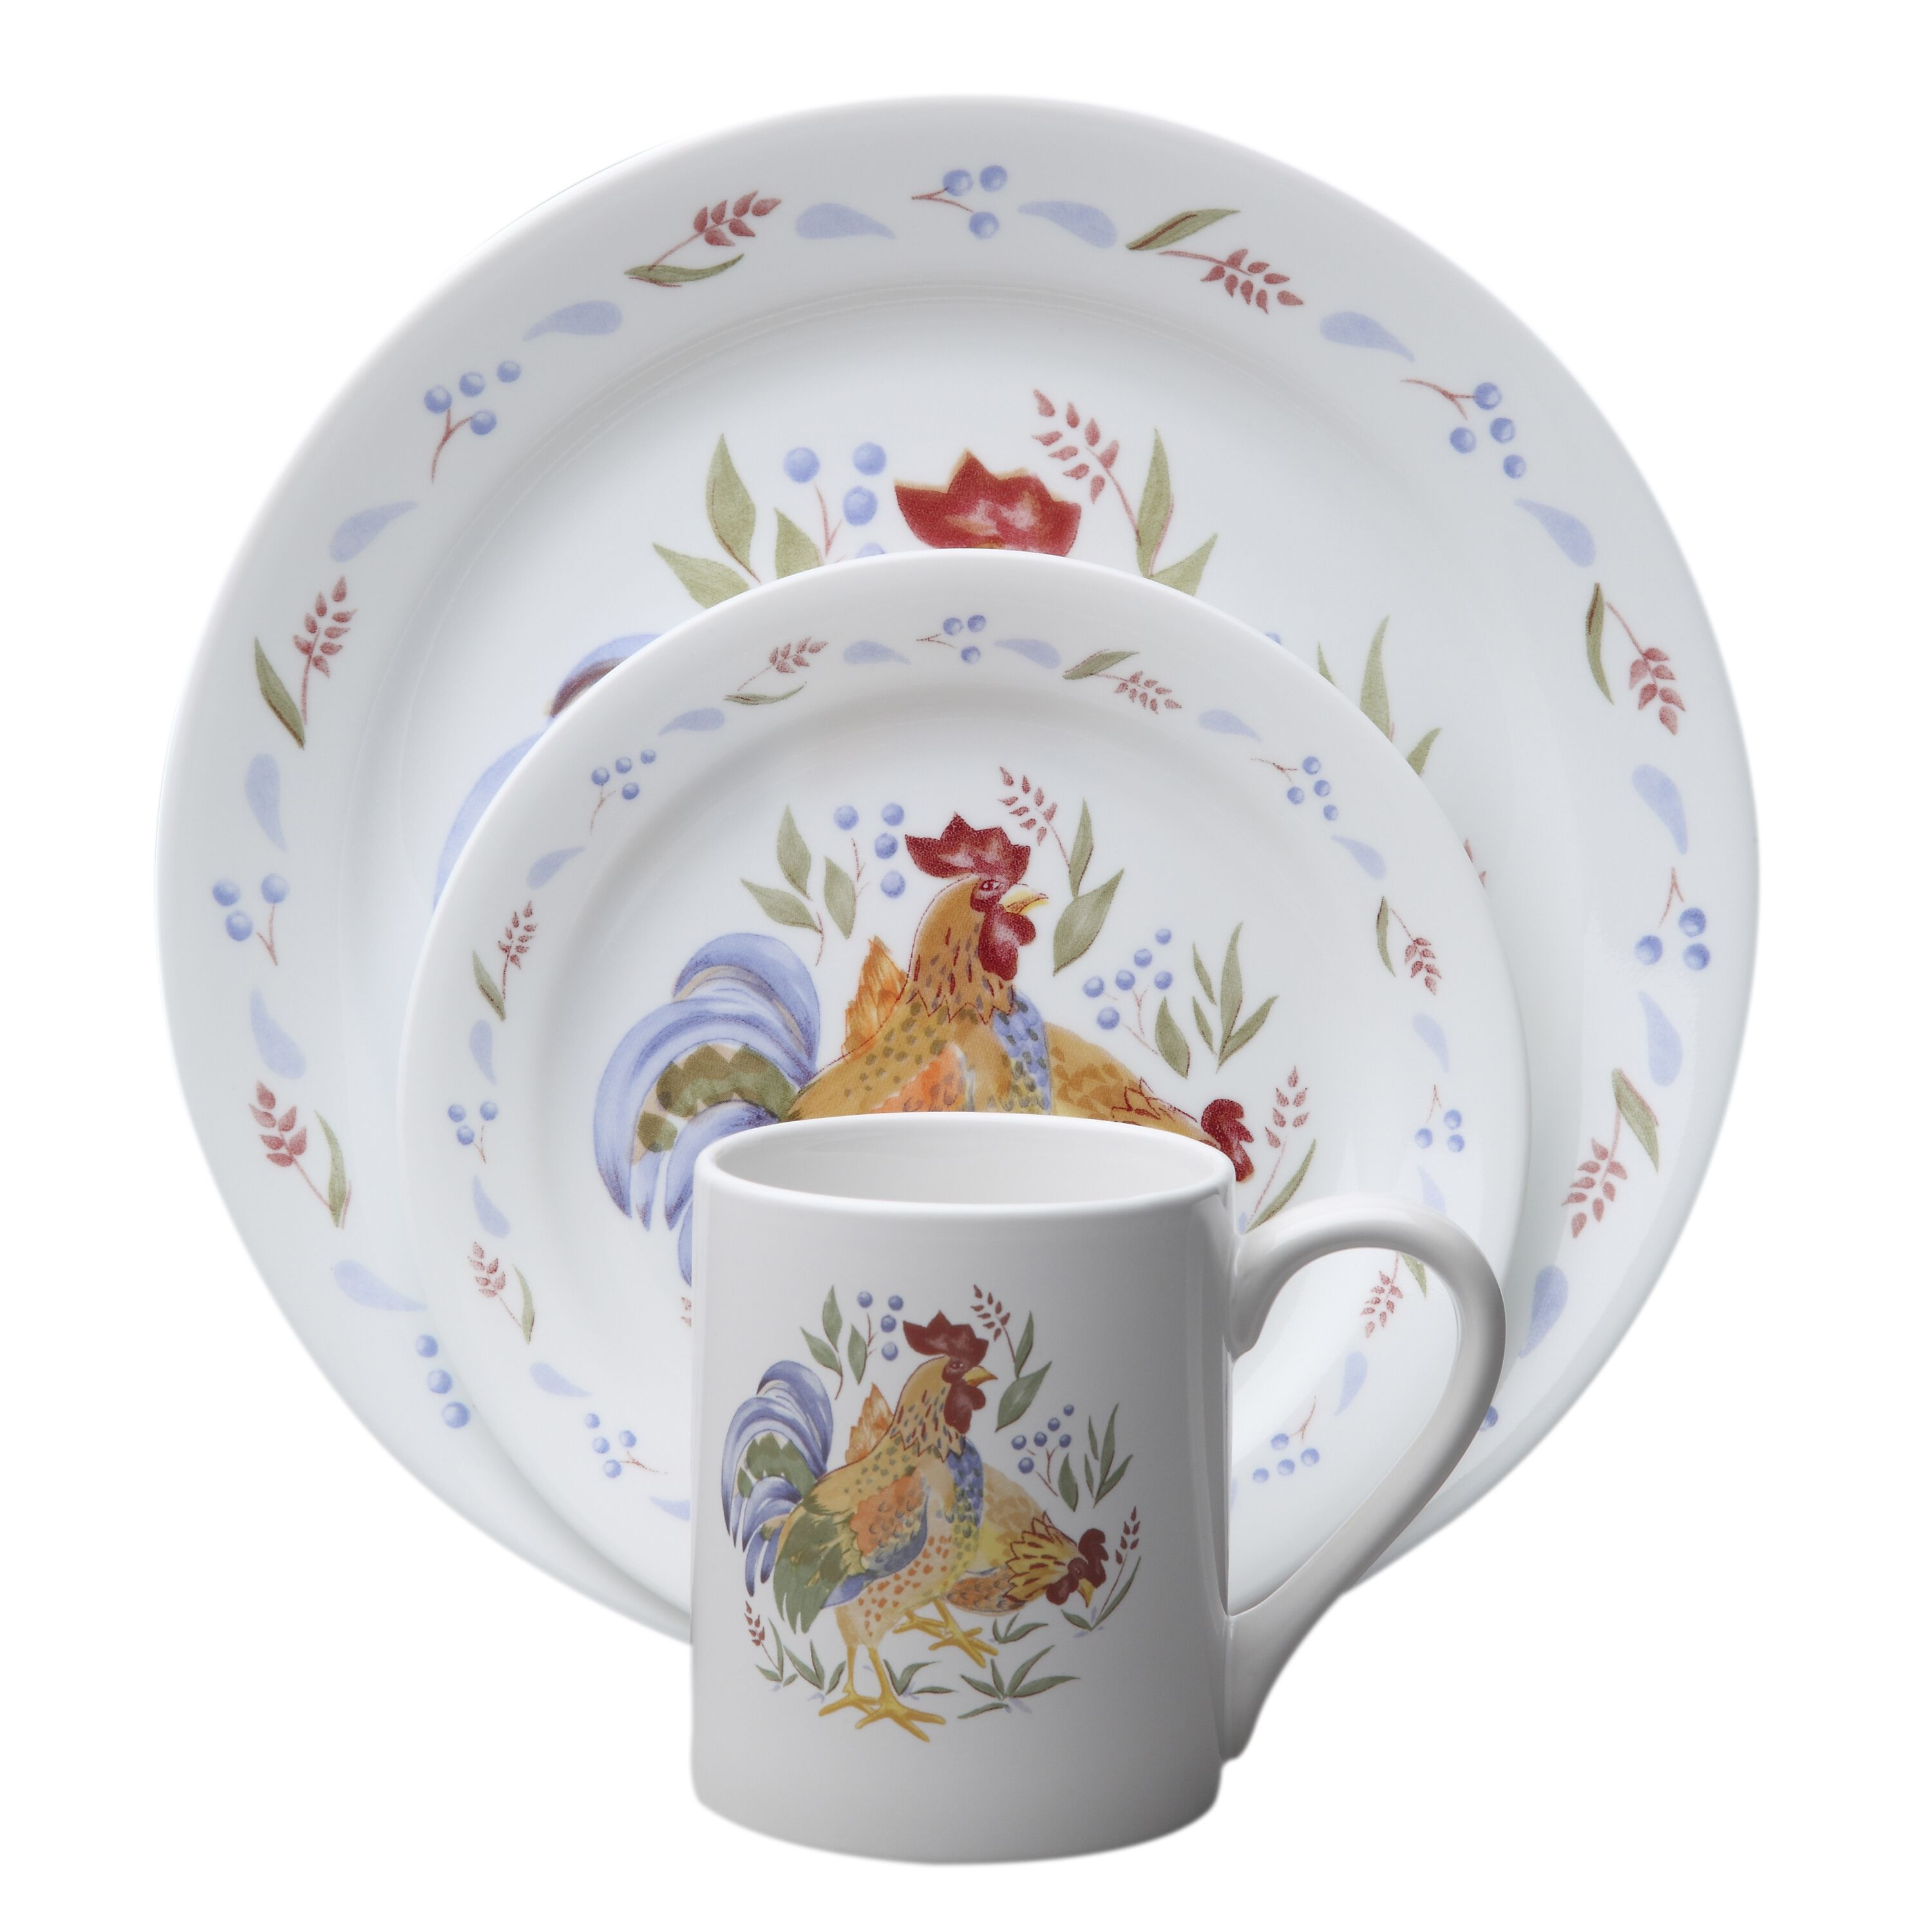 CORELLE Impressions Country Morning Rooster Thanksgiving